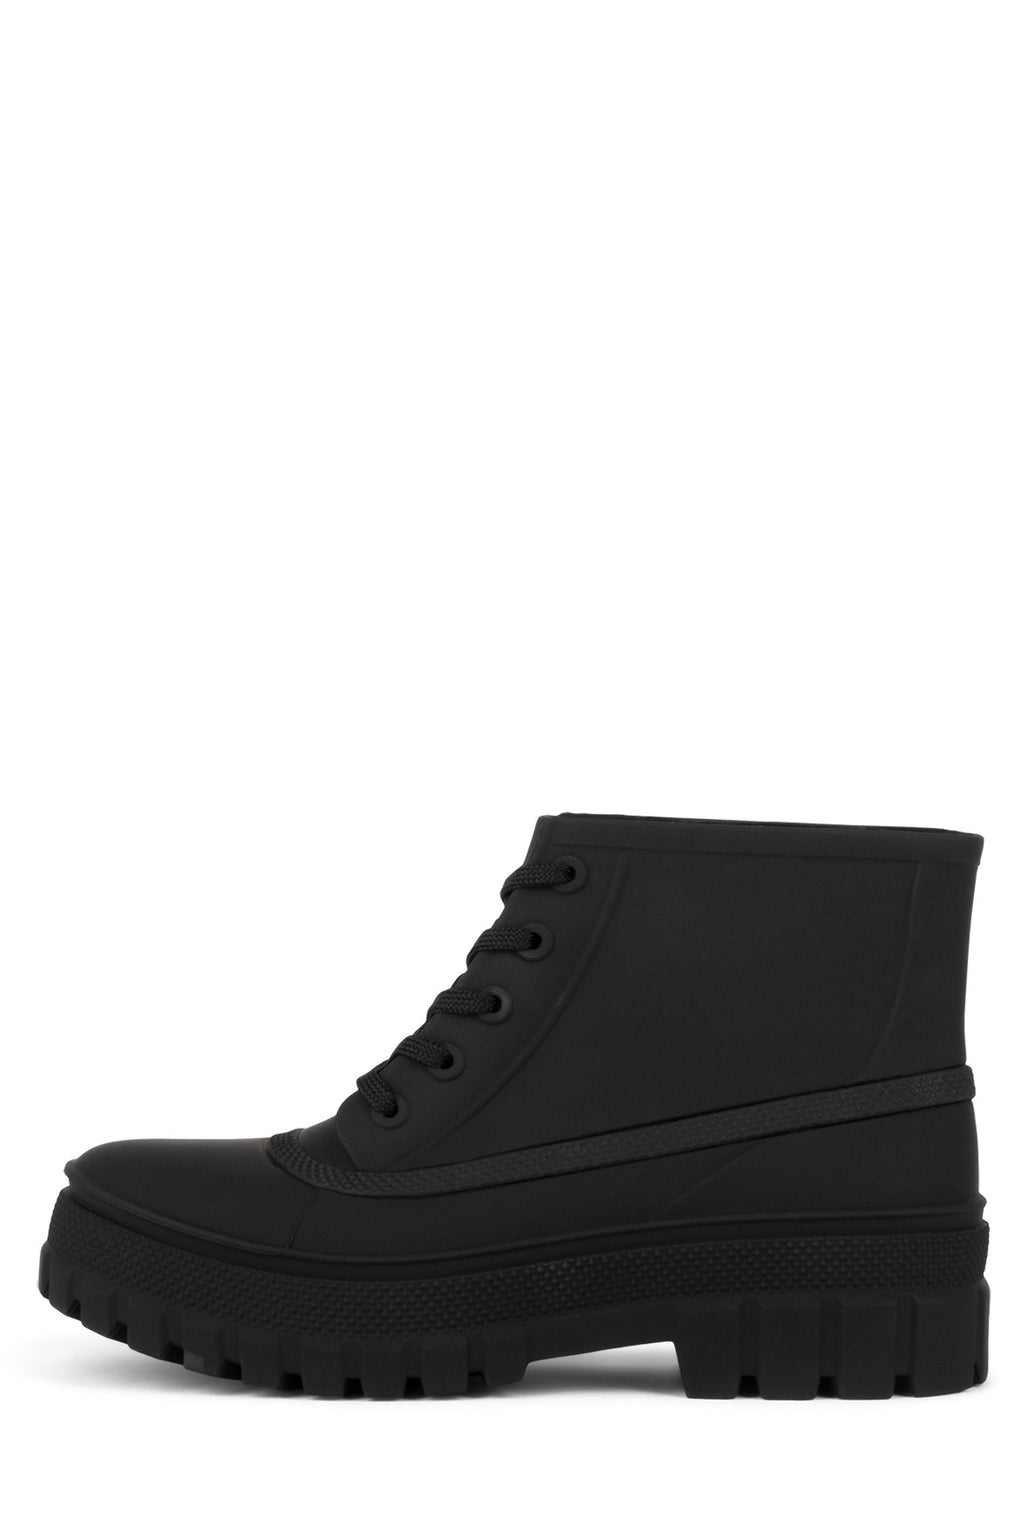 RAINCOAT Rain Boot Jeffrey Campbell Black Matte 6